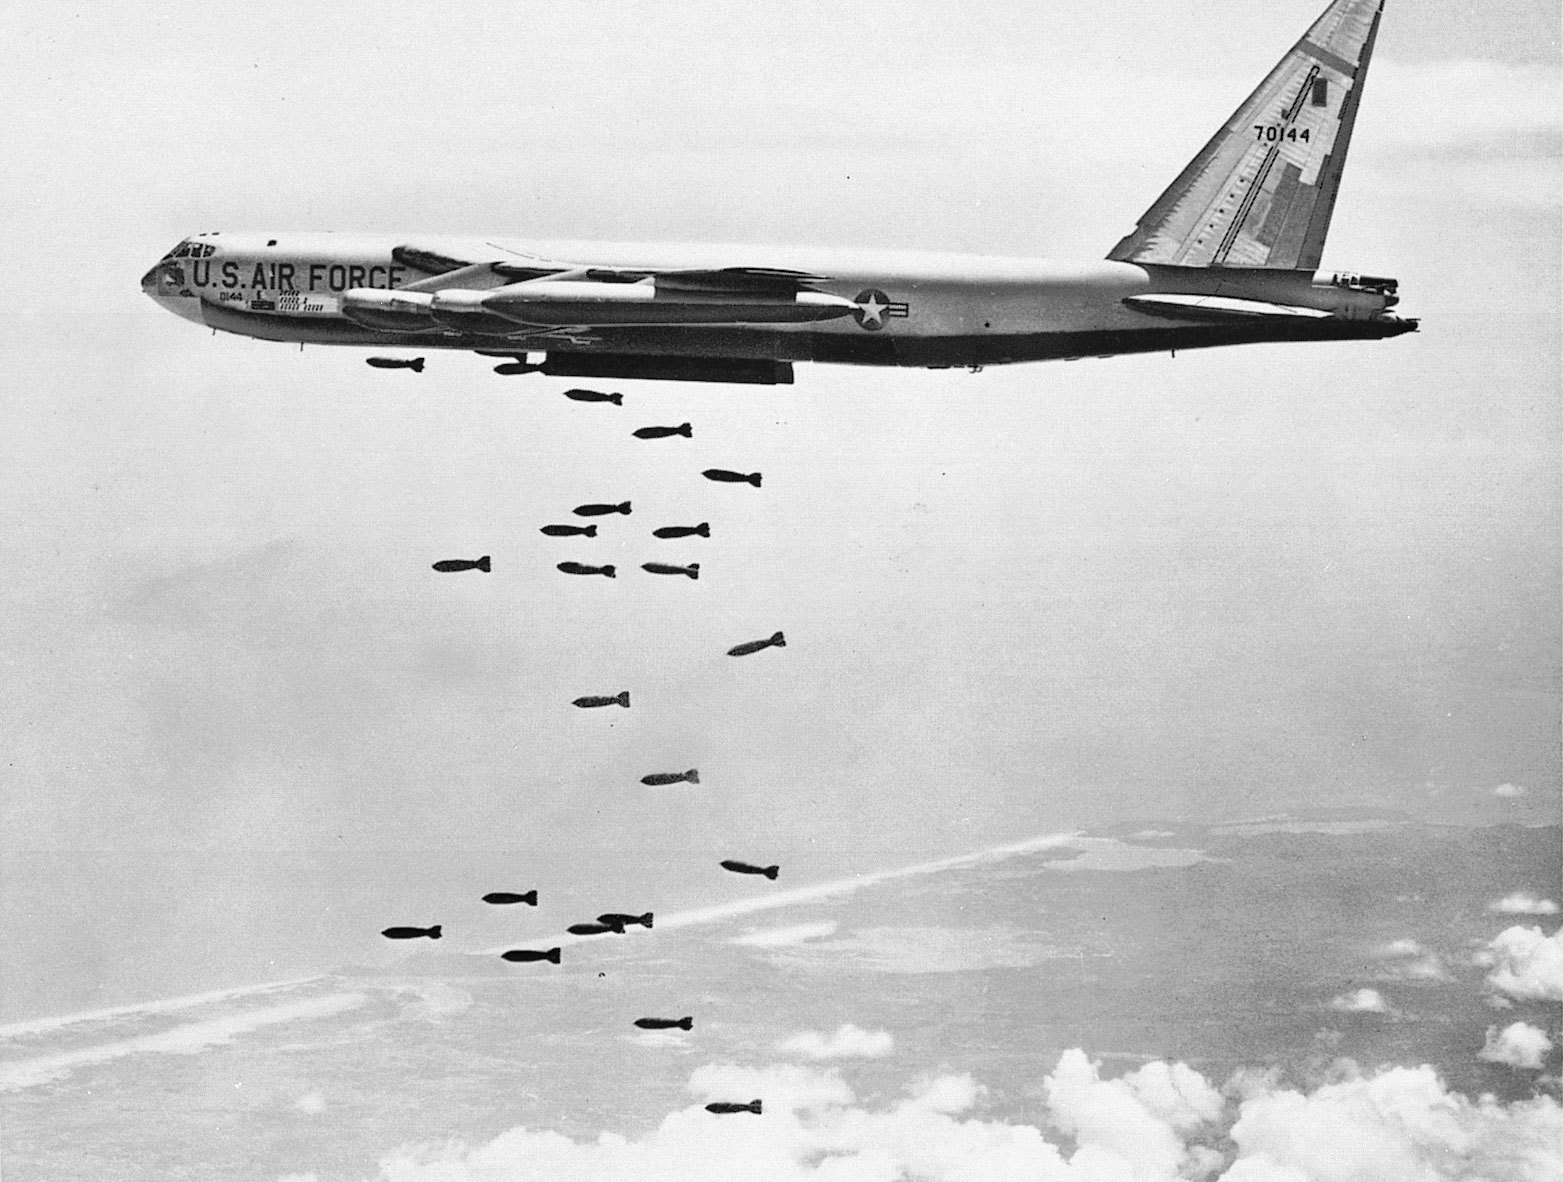 Aircraft bombs B-52 Stratofortress HD Wallpaper